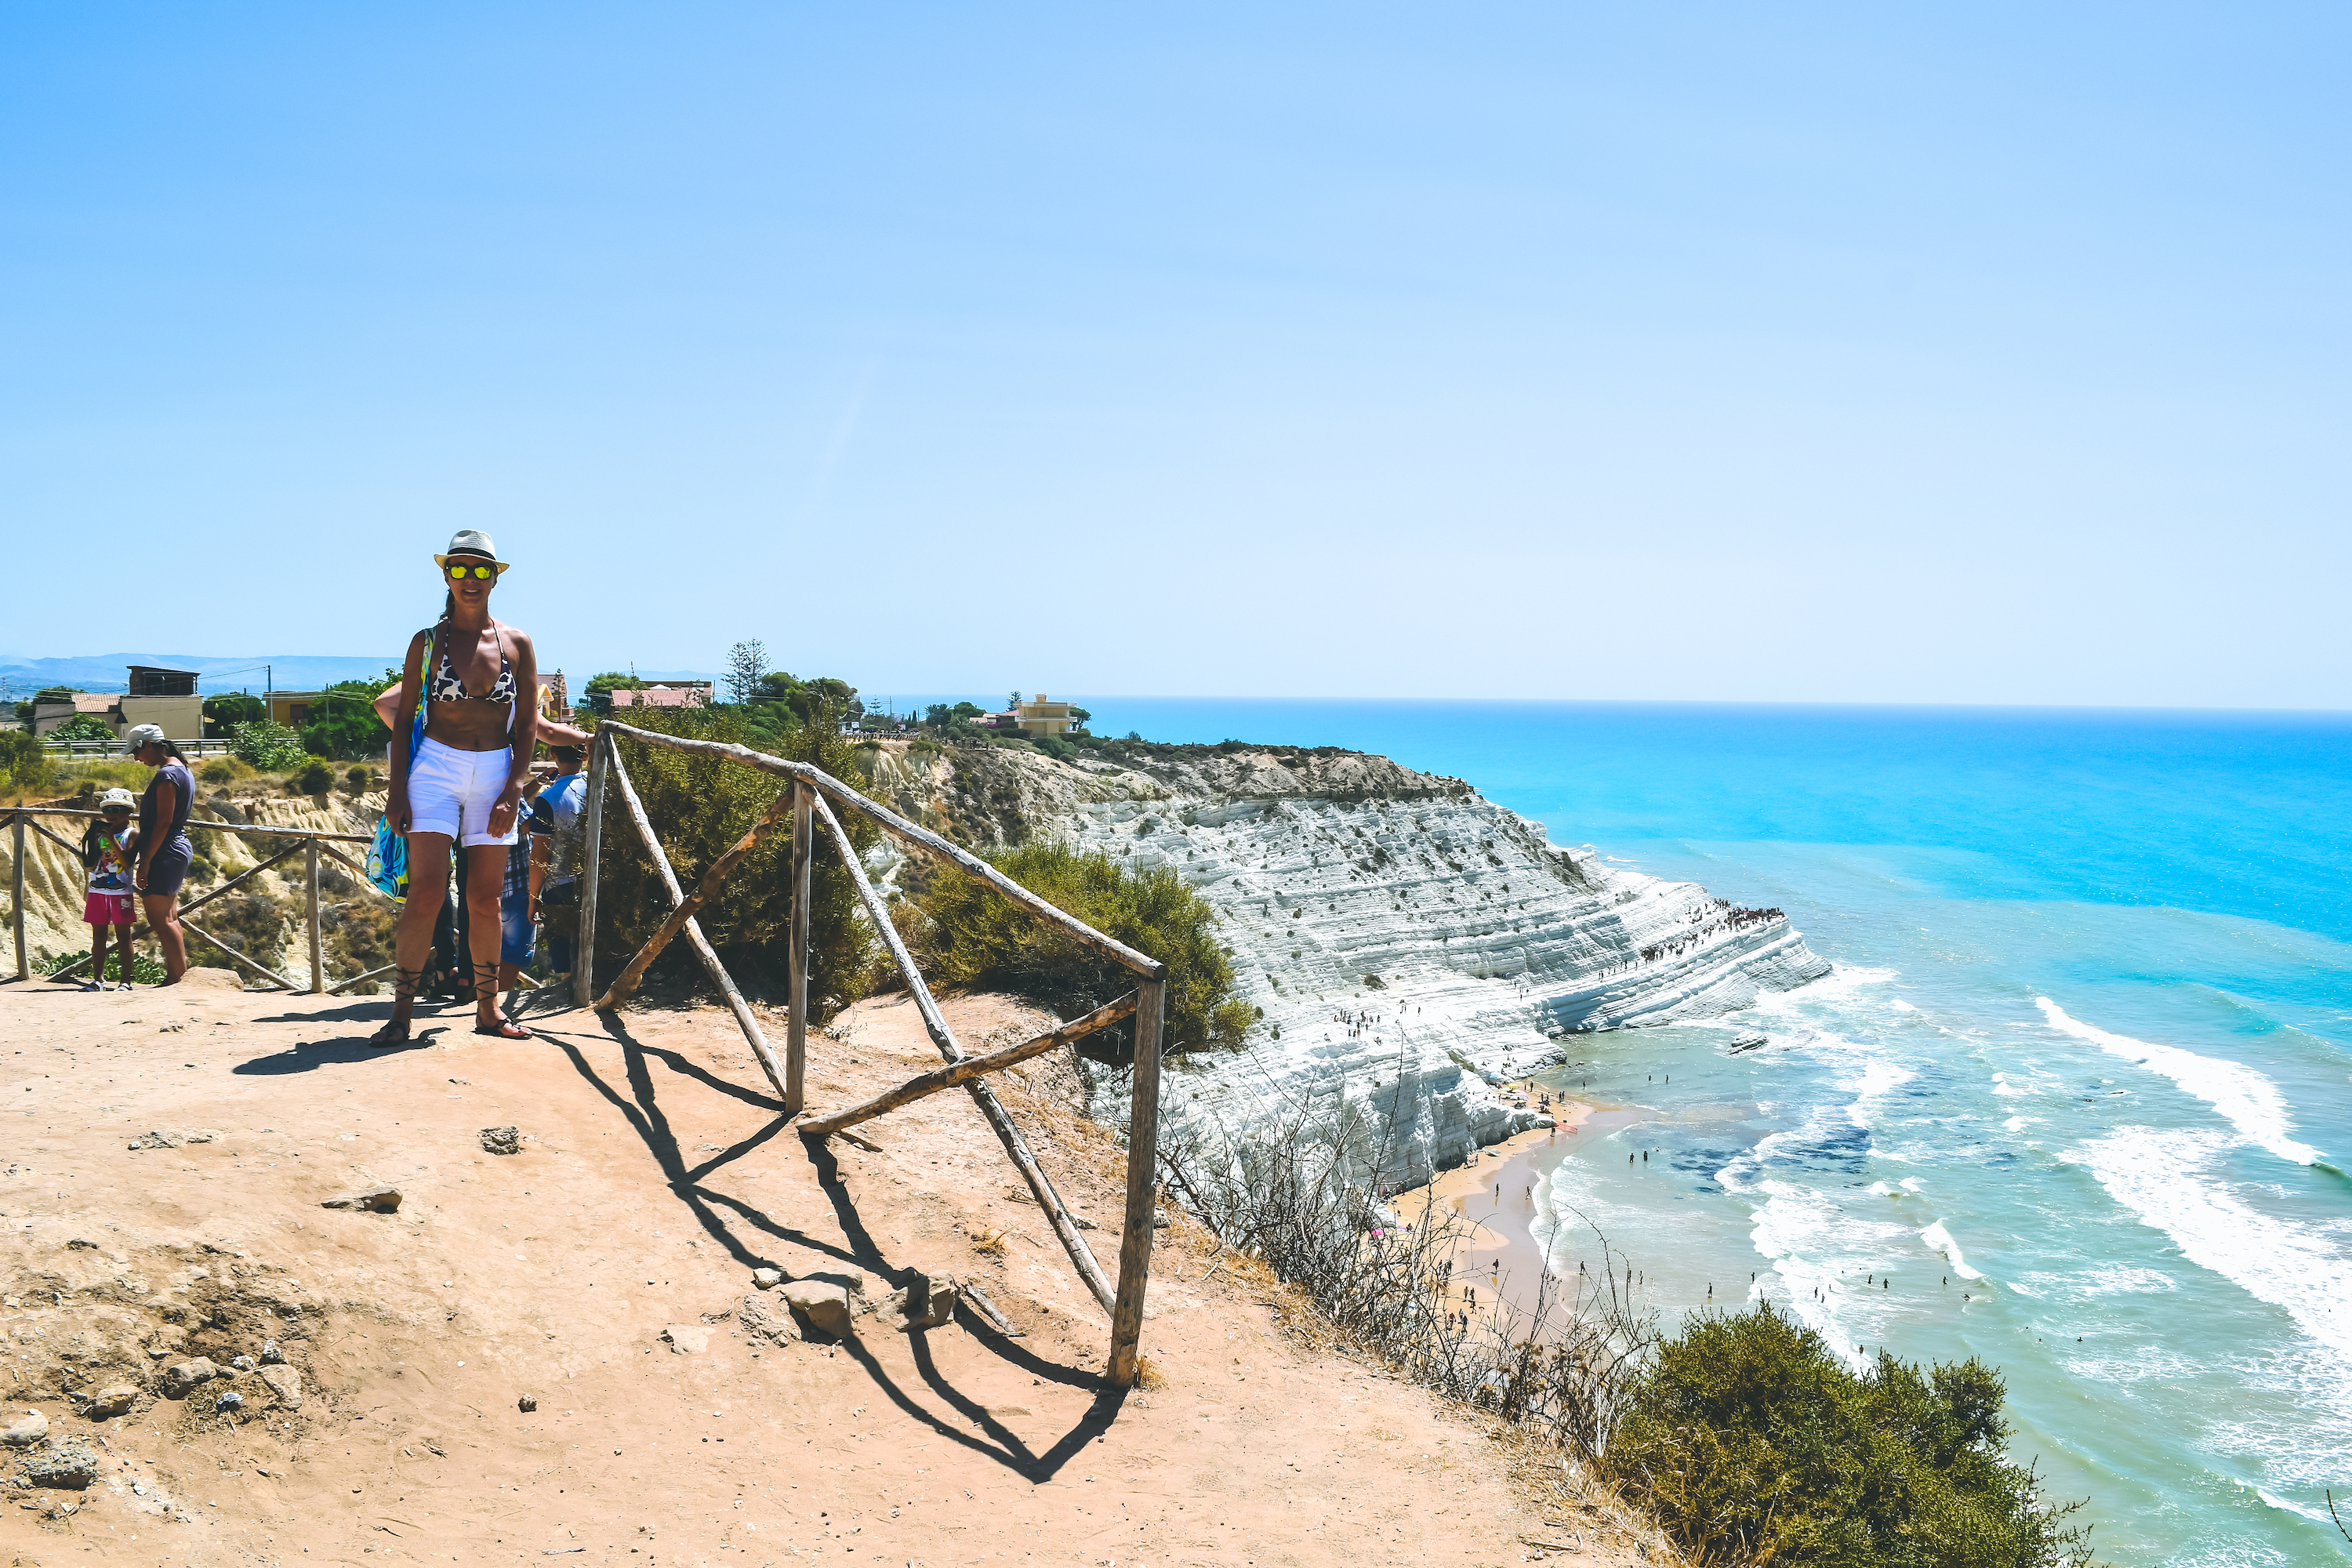 Travel guide to sicily scala dei turchi agrigento what to do see italy best time of year-23